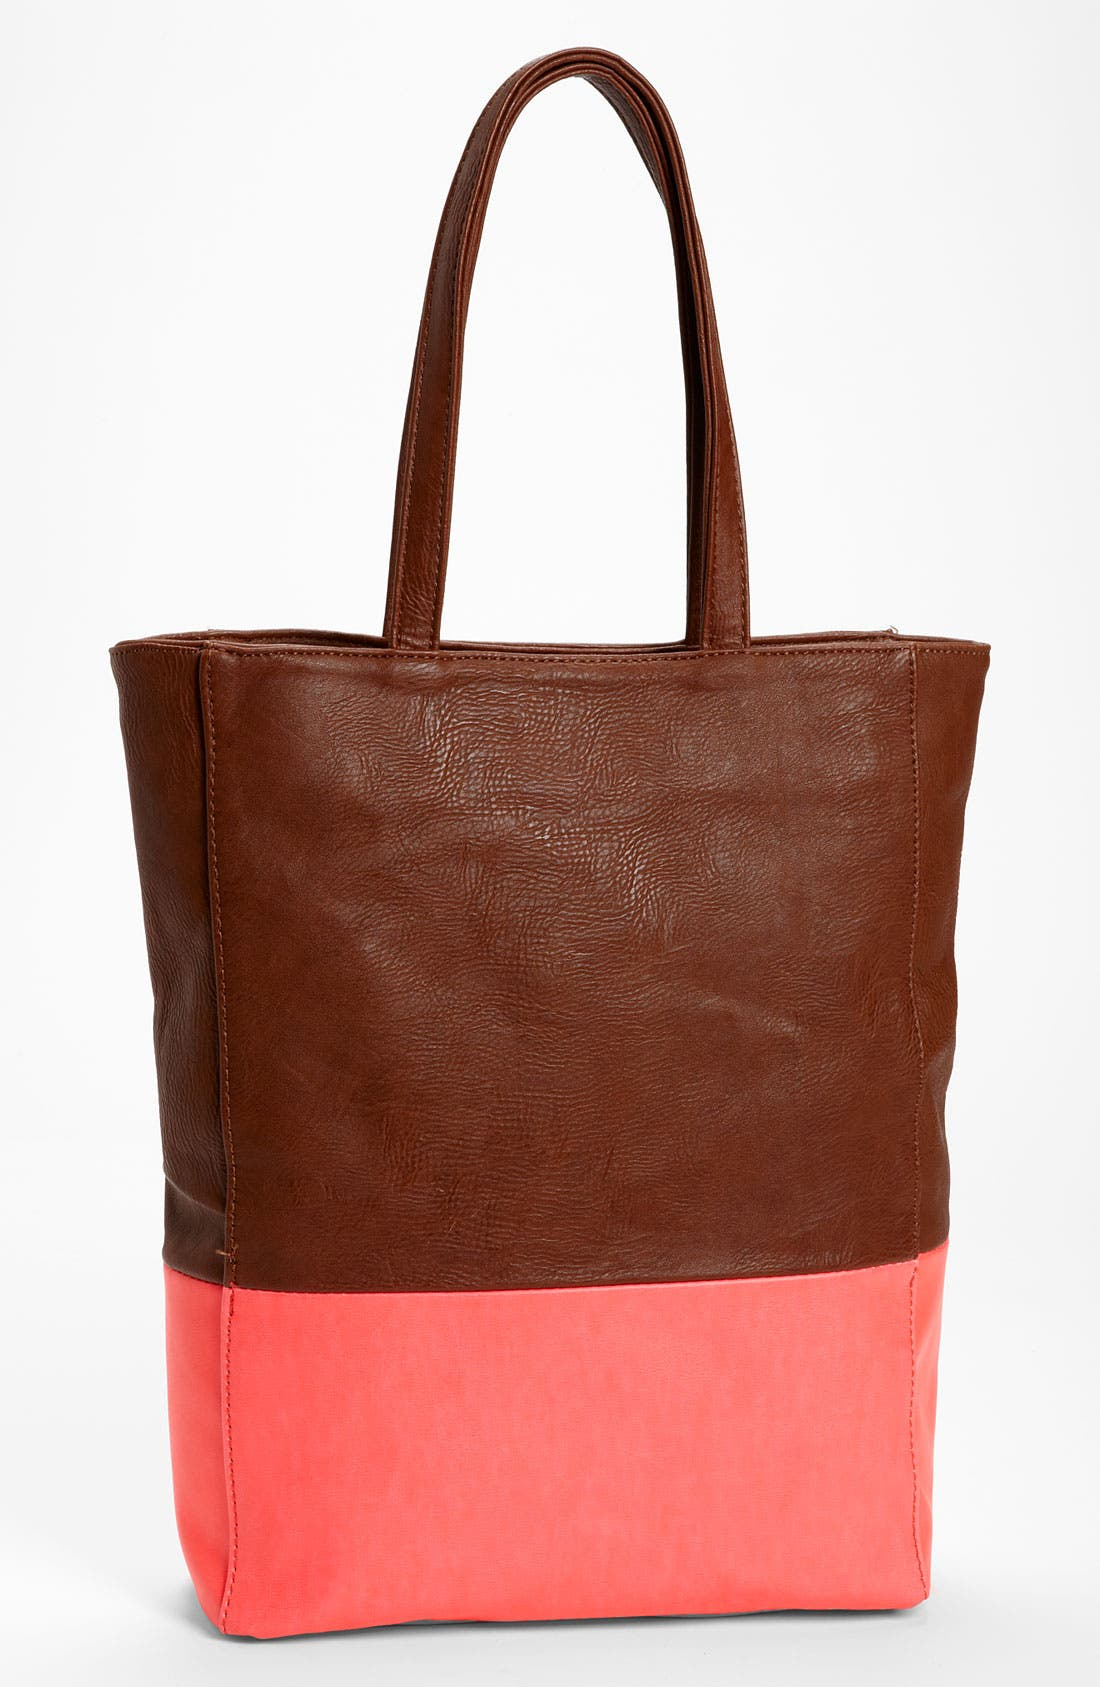 Alternate Image 1 Selected - Street Level Colorblock Faux Leather Tote